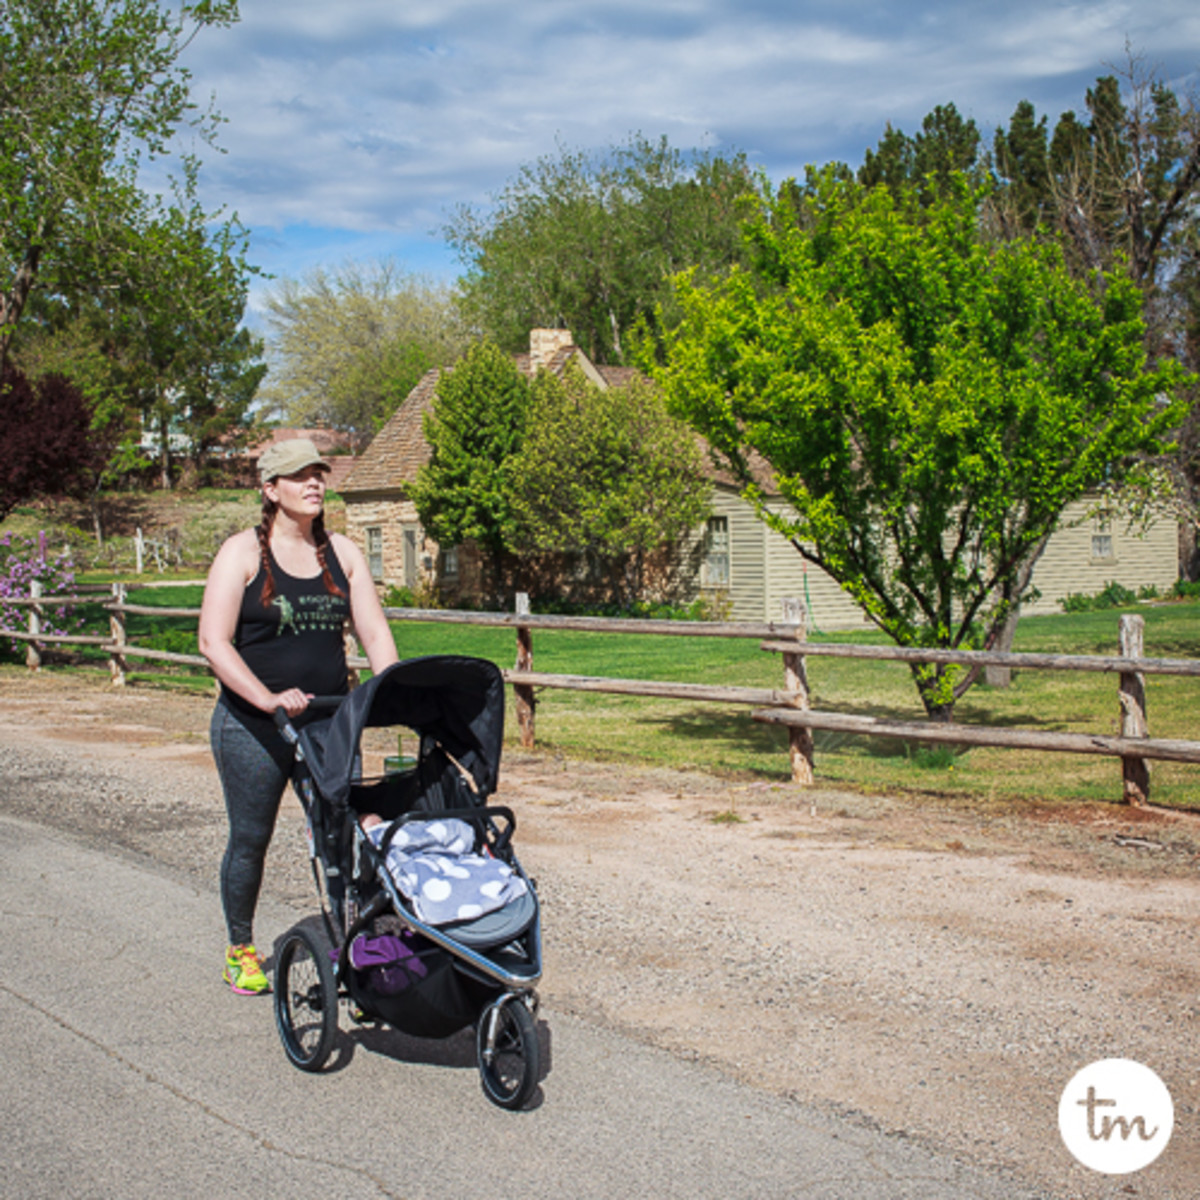 finding a work-out routine after having a baby